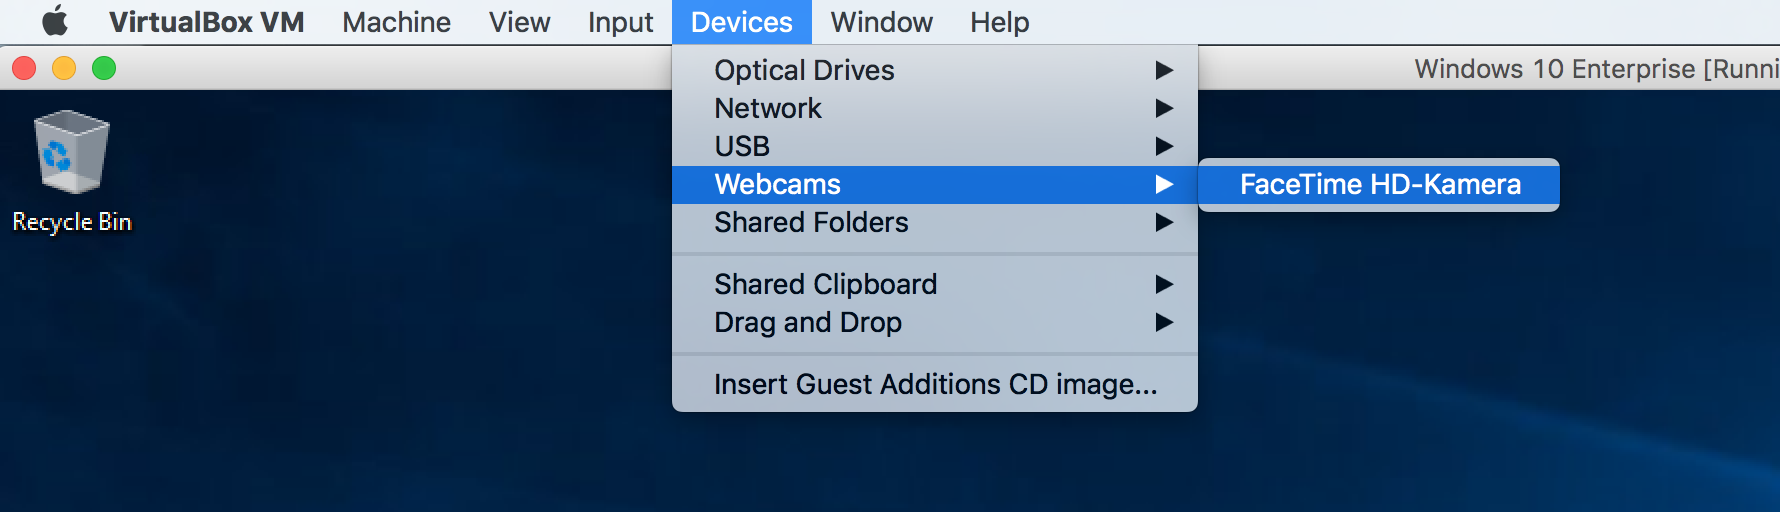 Camera on Windows 10 VM in VirtualBox on Mac OS X